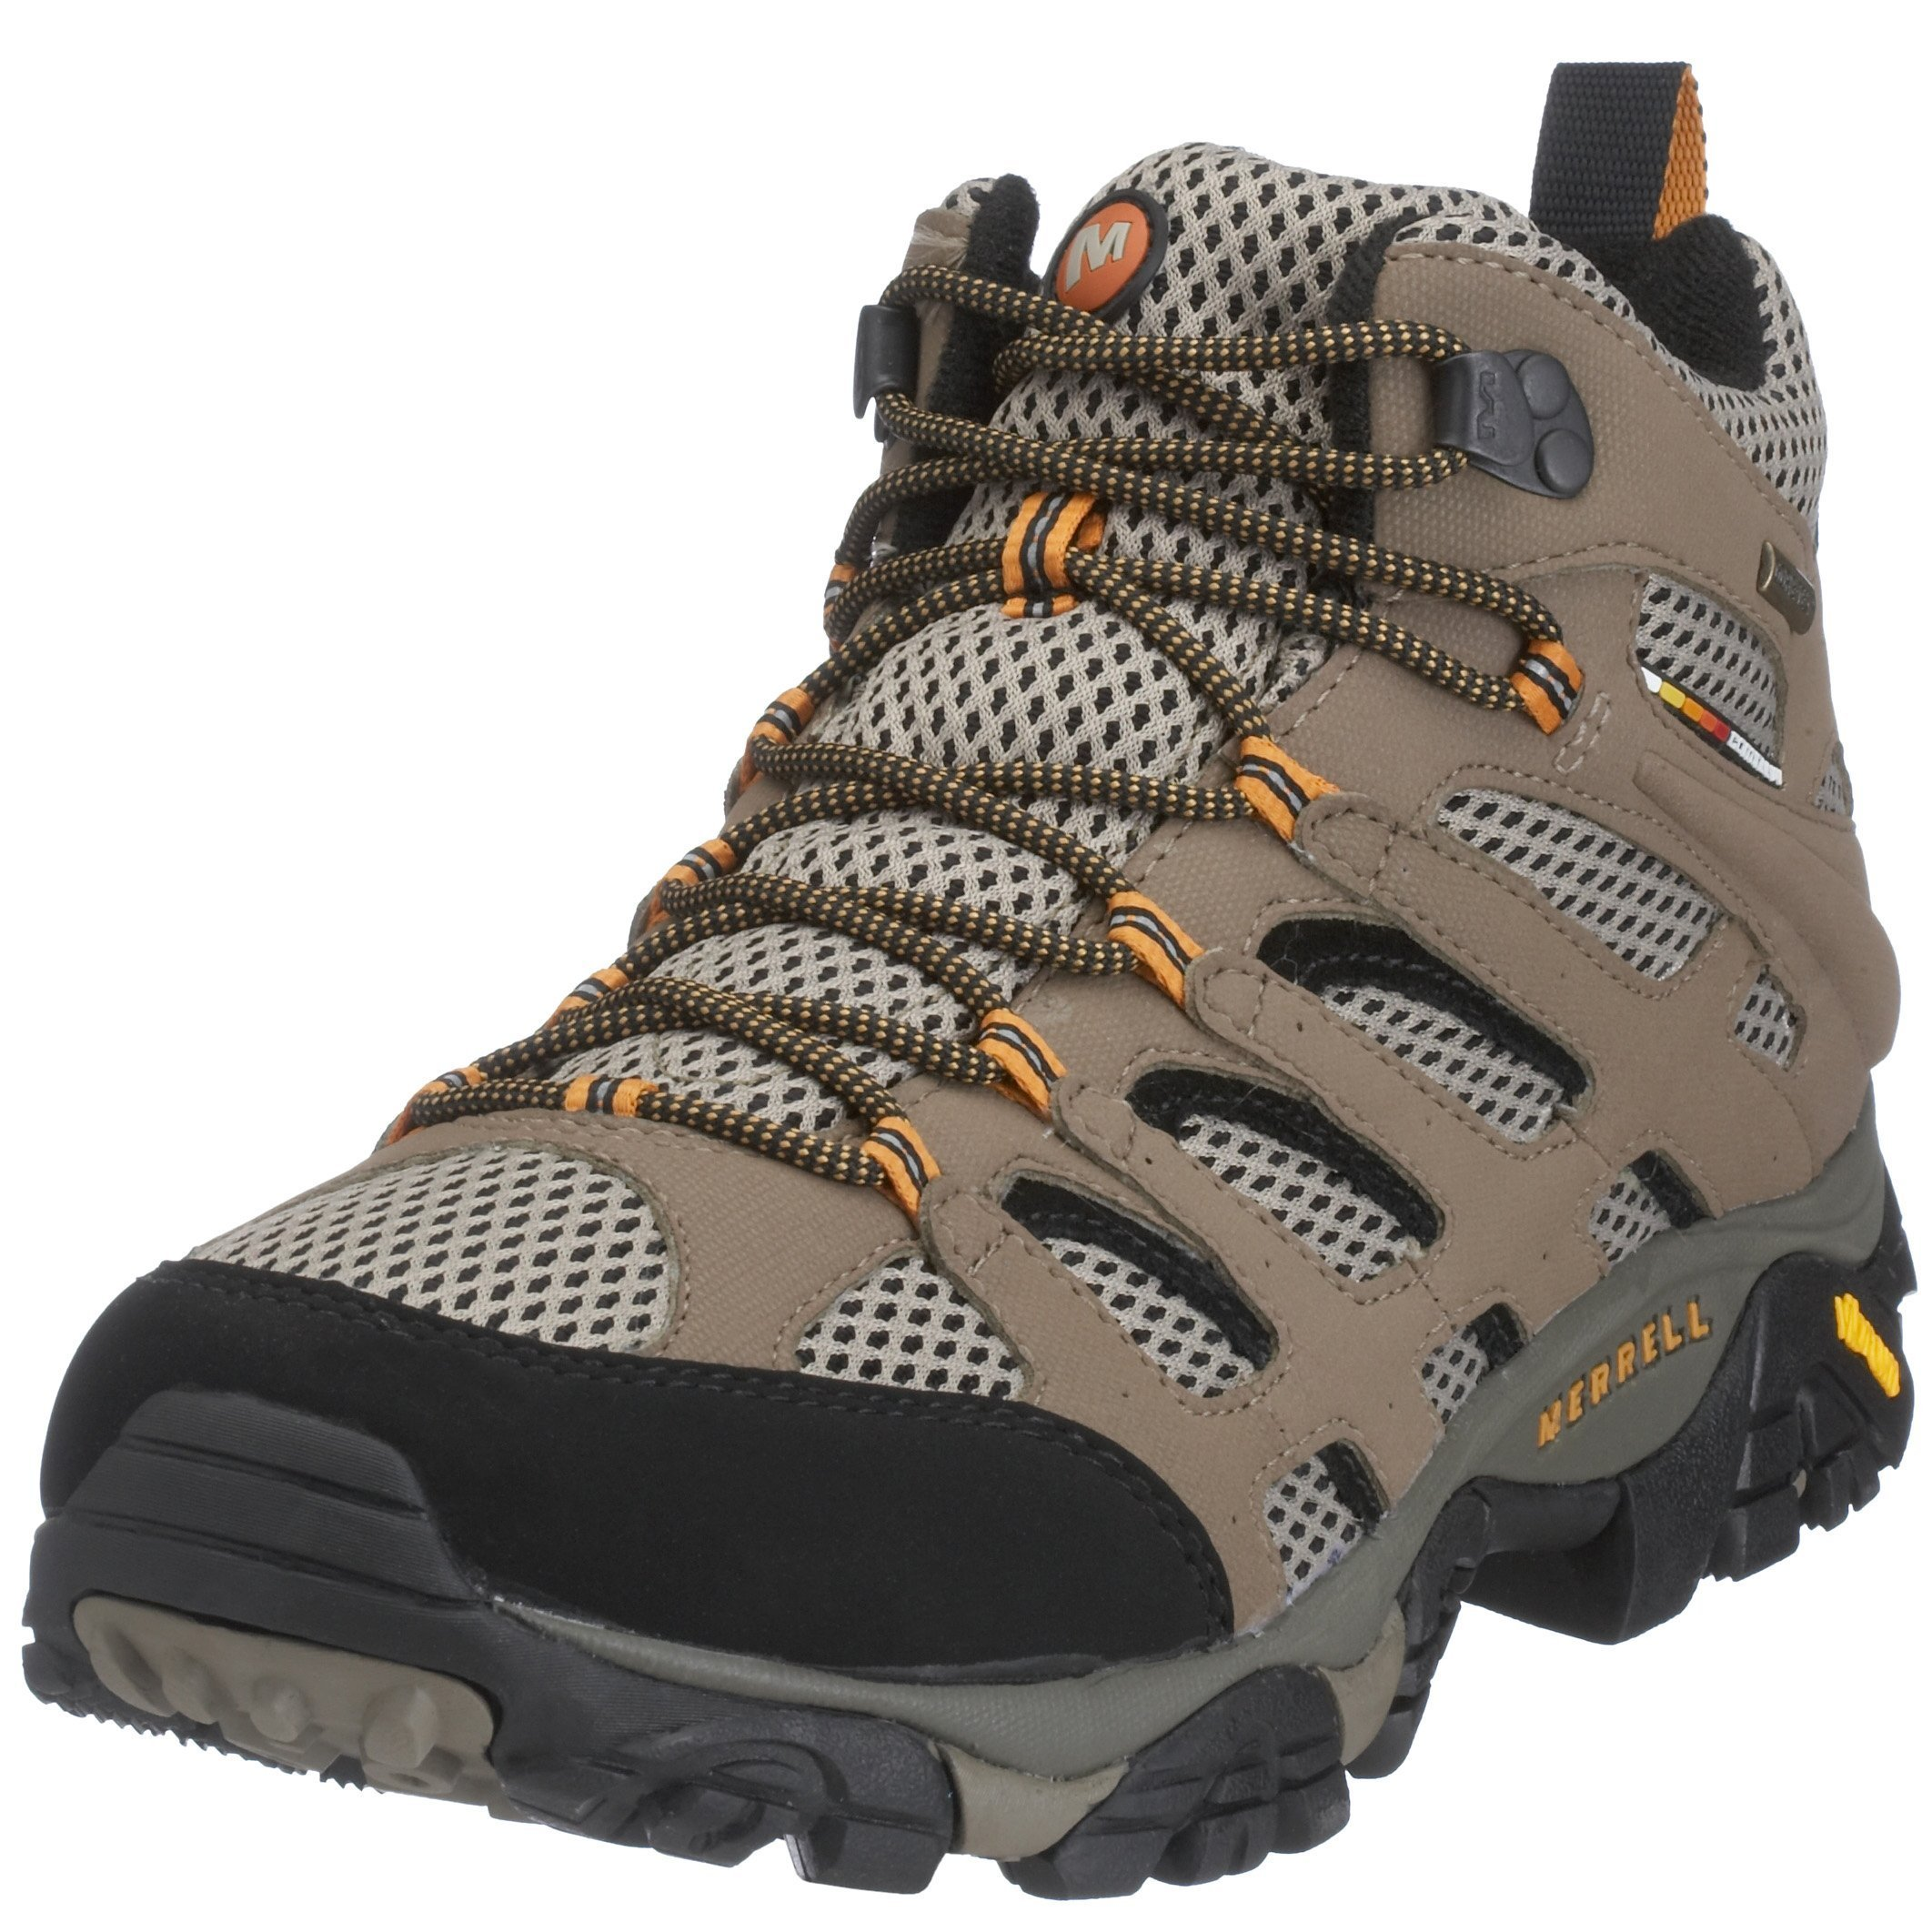 Merrell  Moab Mid GORE-TEX Boot,Dark Tan,10